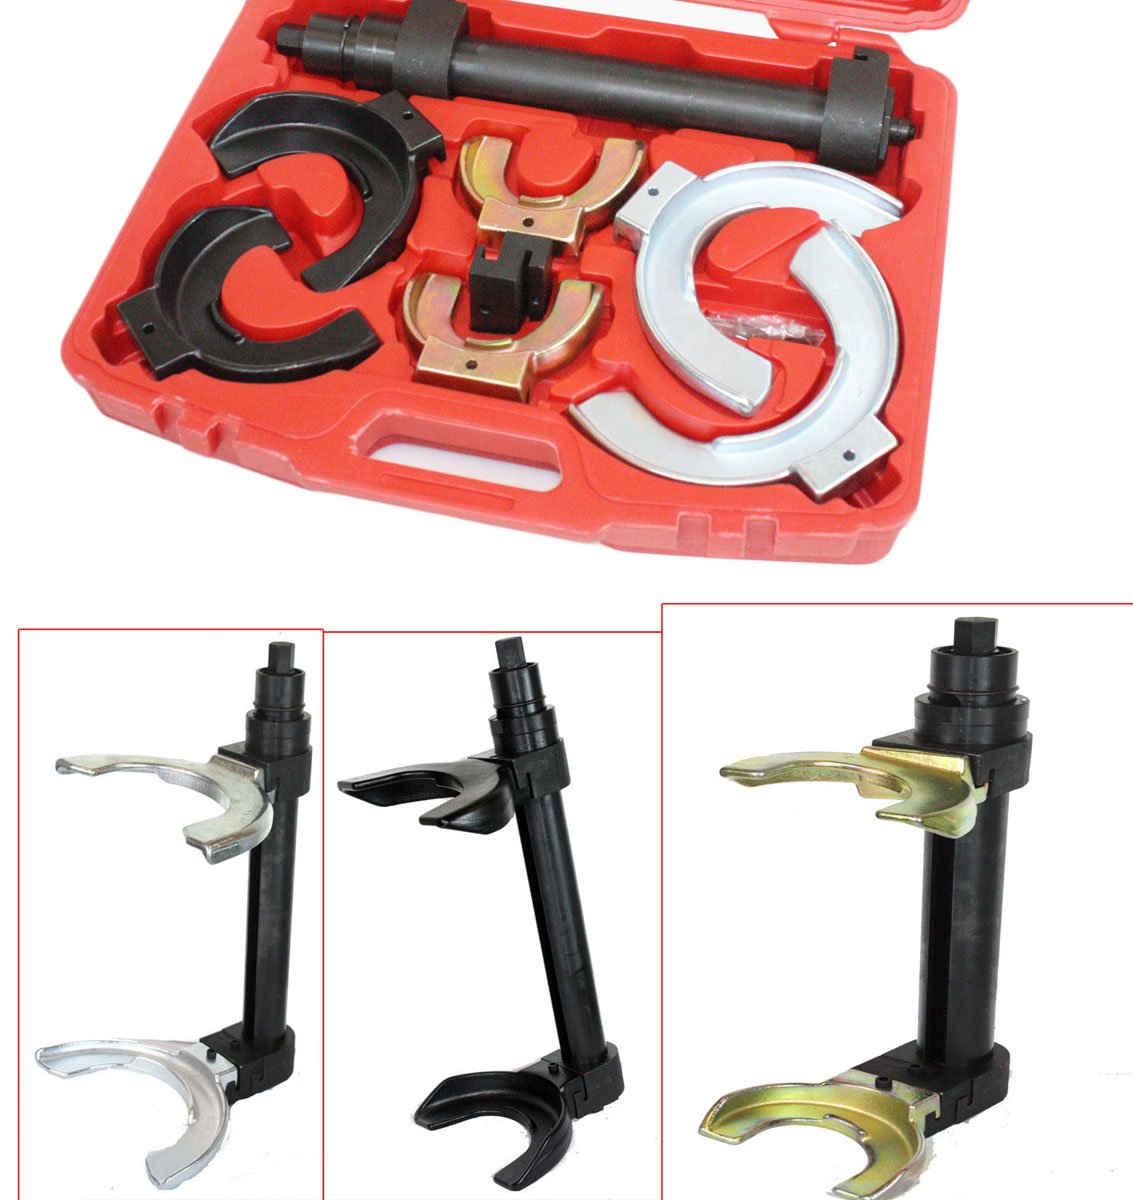 QuestCraft Auto MacPherson Interchangable Fork Strut Coil Spring Compressor Extractor Set by I_S IMPORT (Image #2)